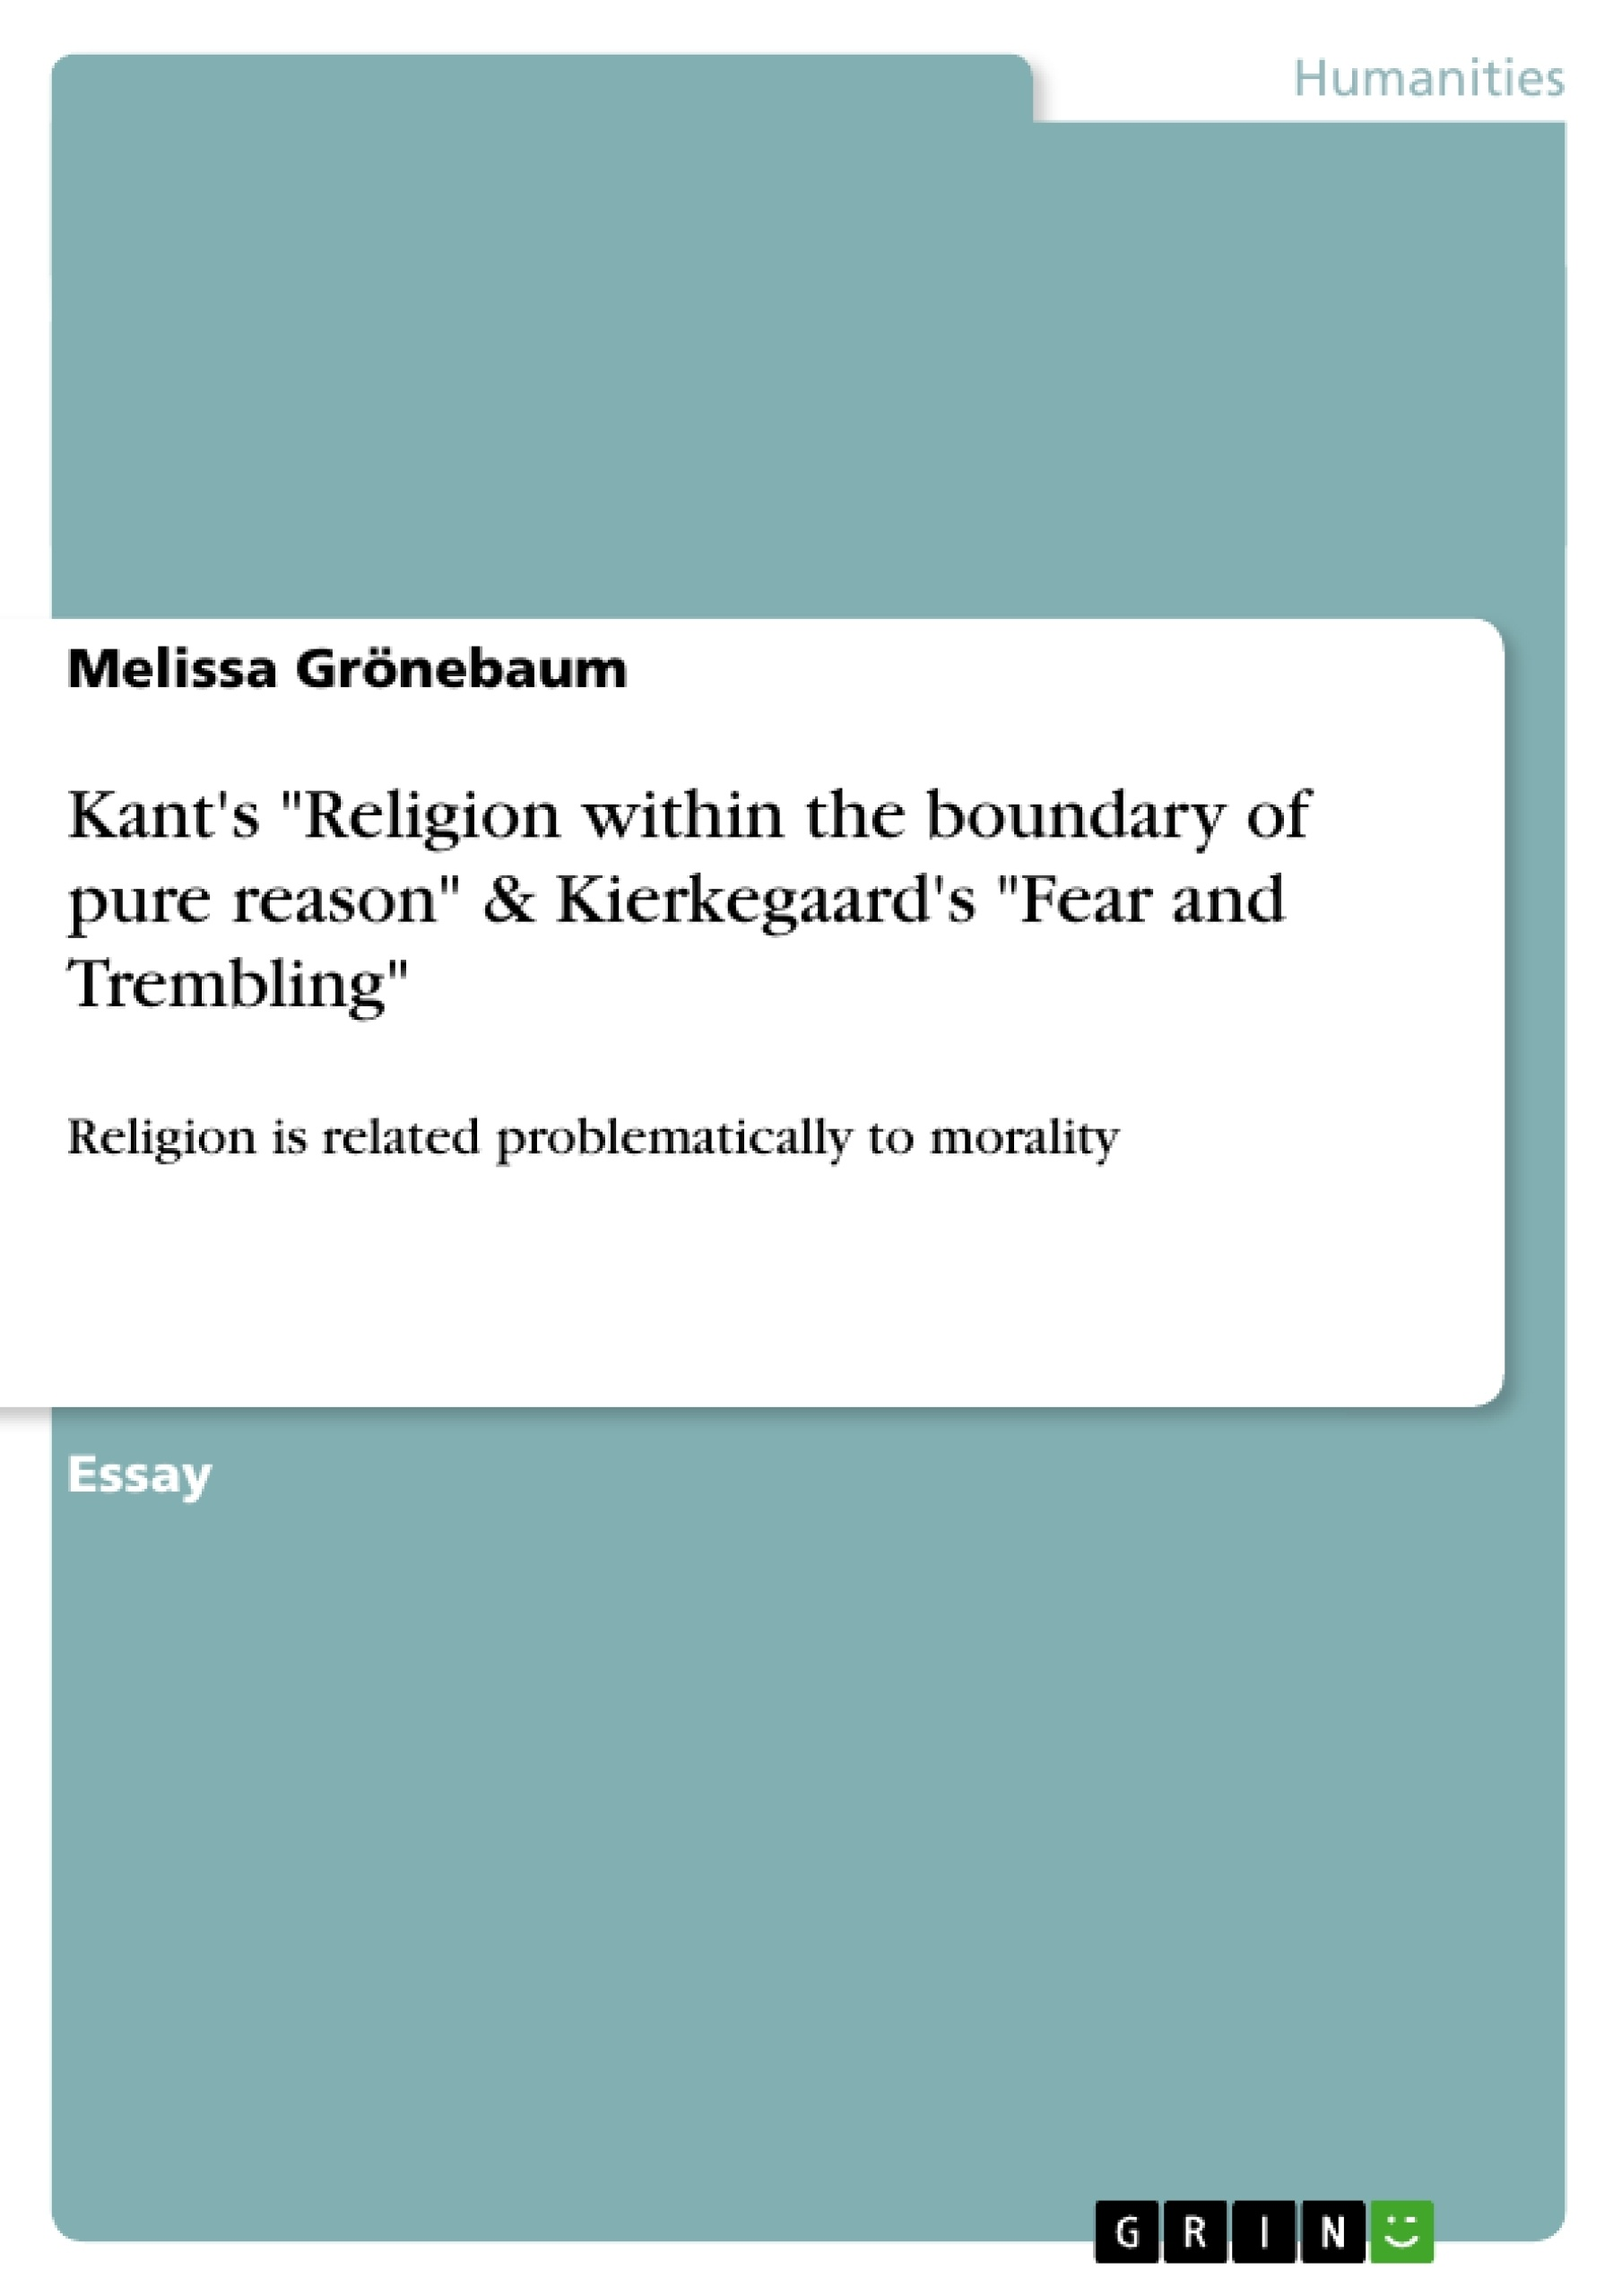 """Title: Kant's """"Religion within the boundary of pure reason"""" & Kierkegaard's """"Fear and Trembling"""""""